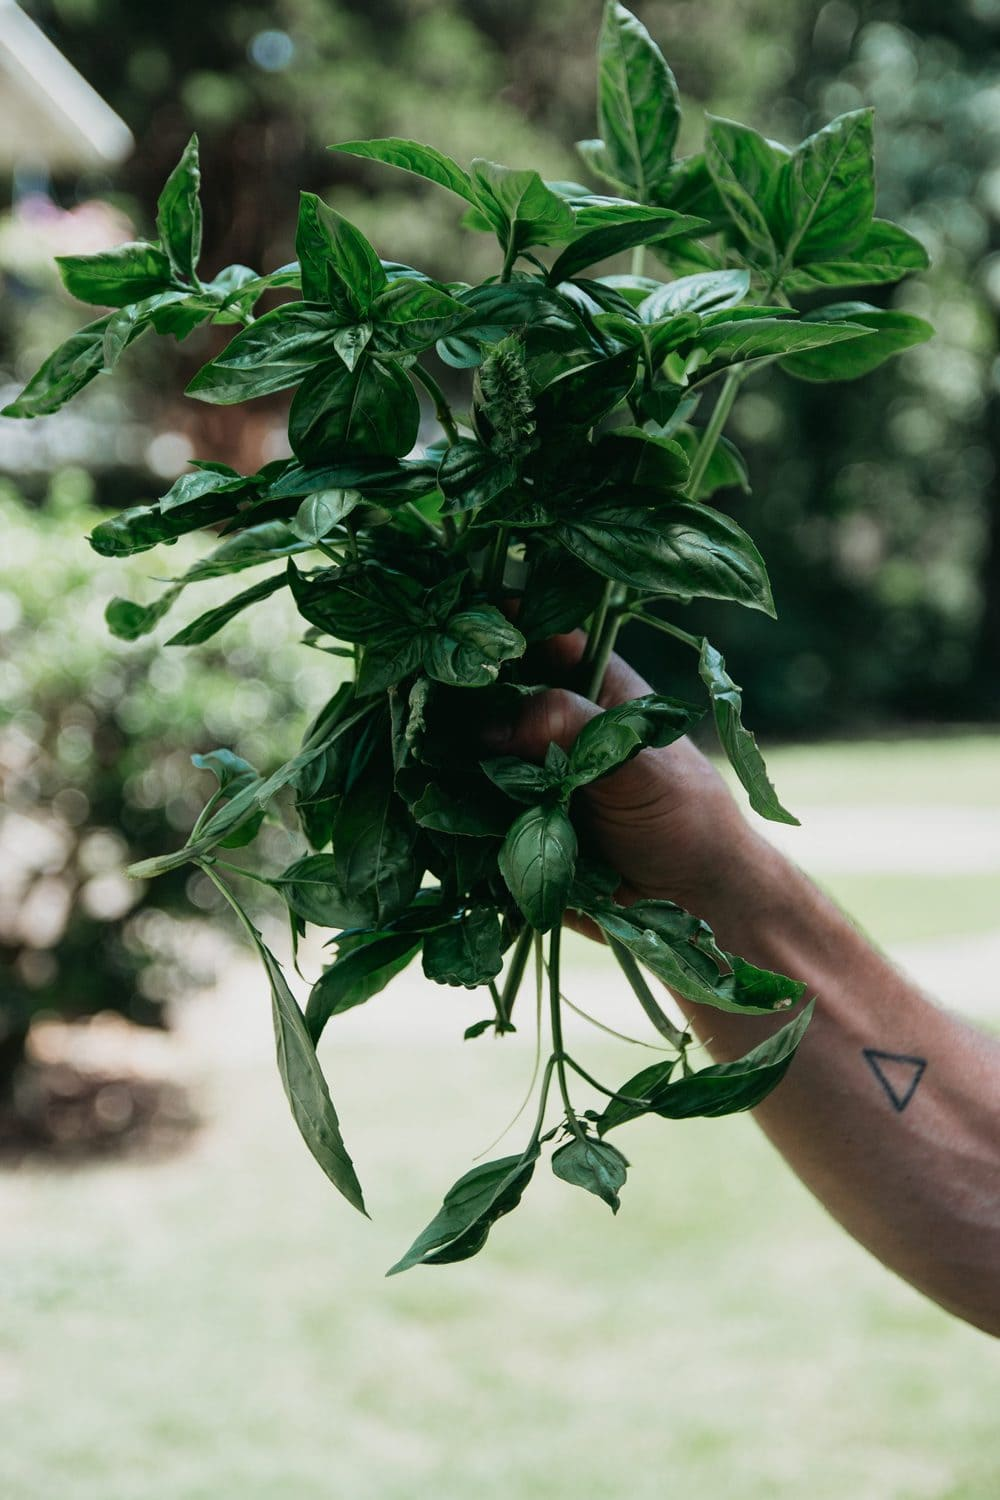 A hand holds a bundle of fresh-picked basil from the garden.